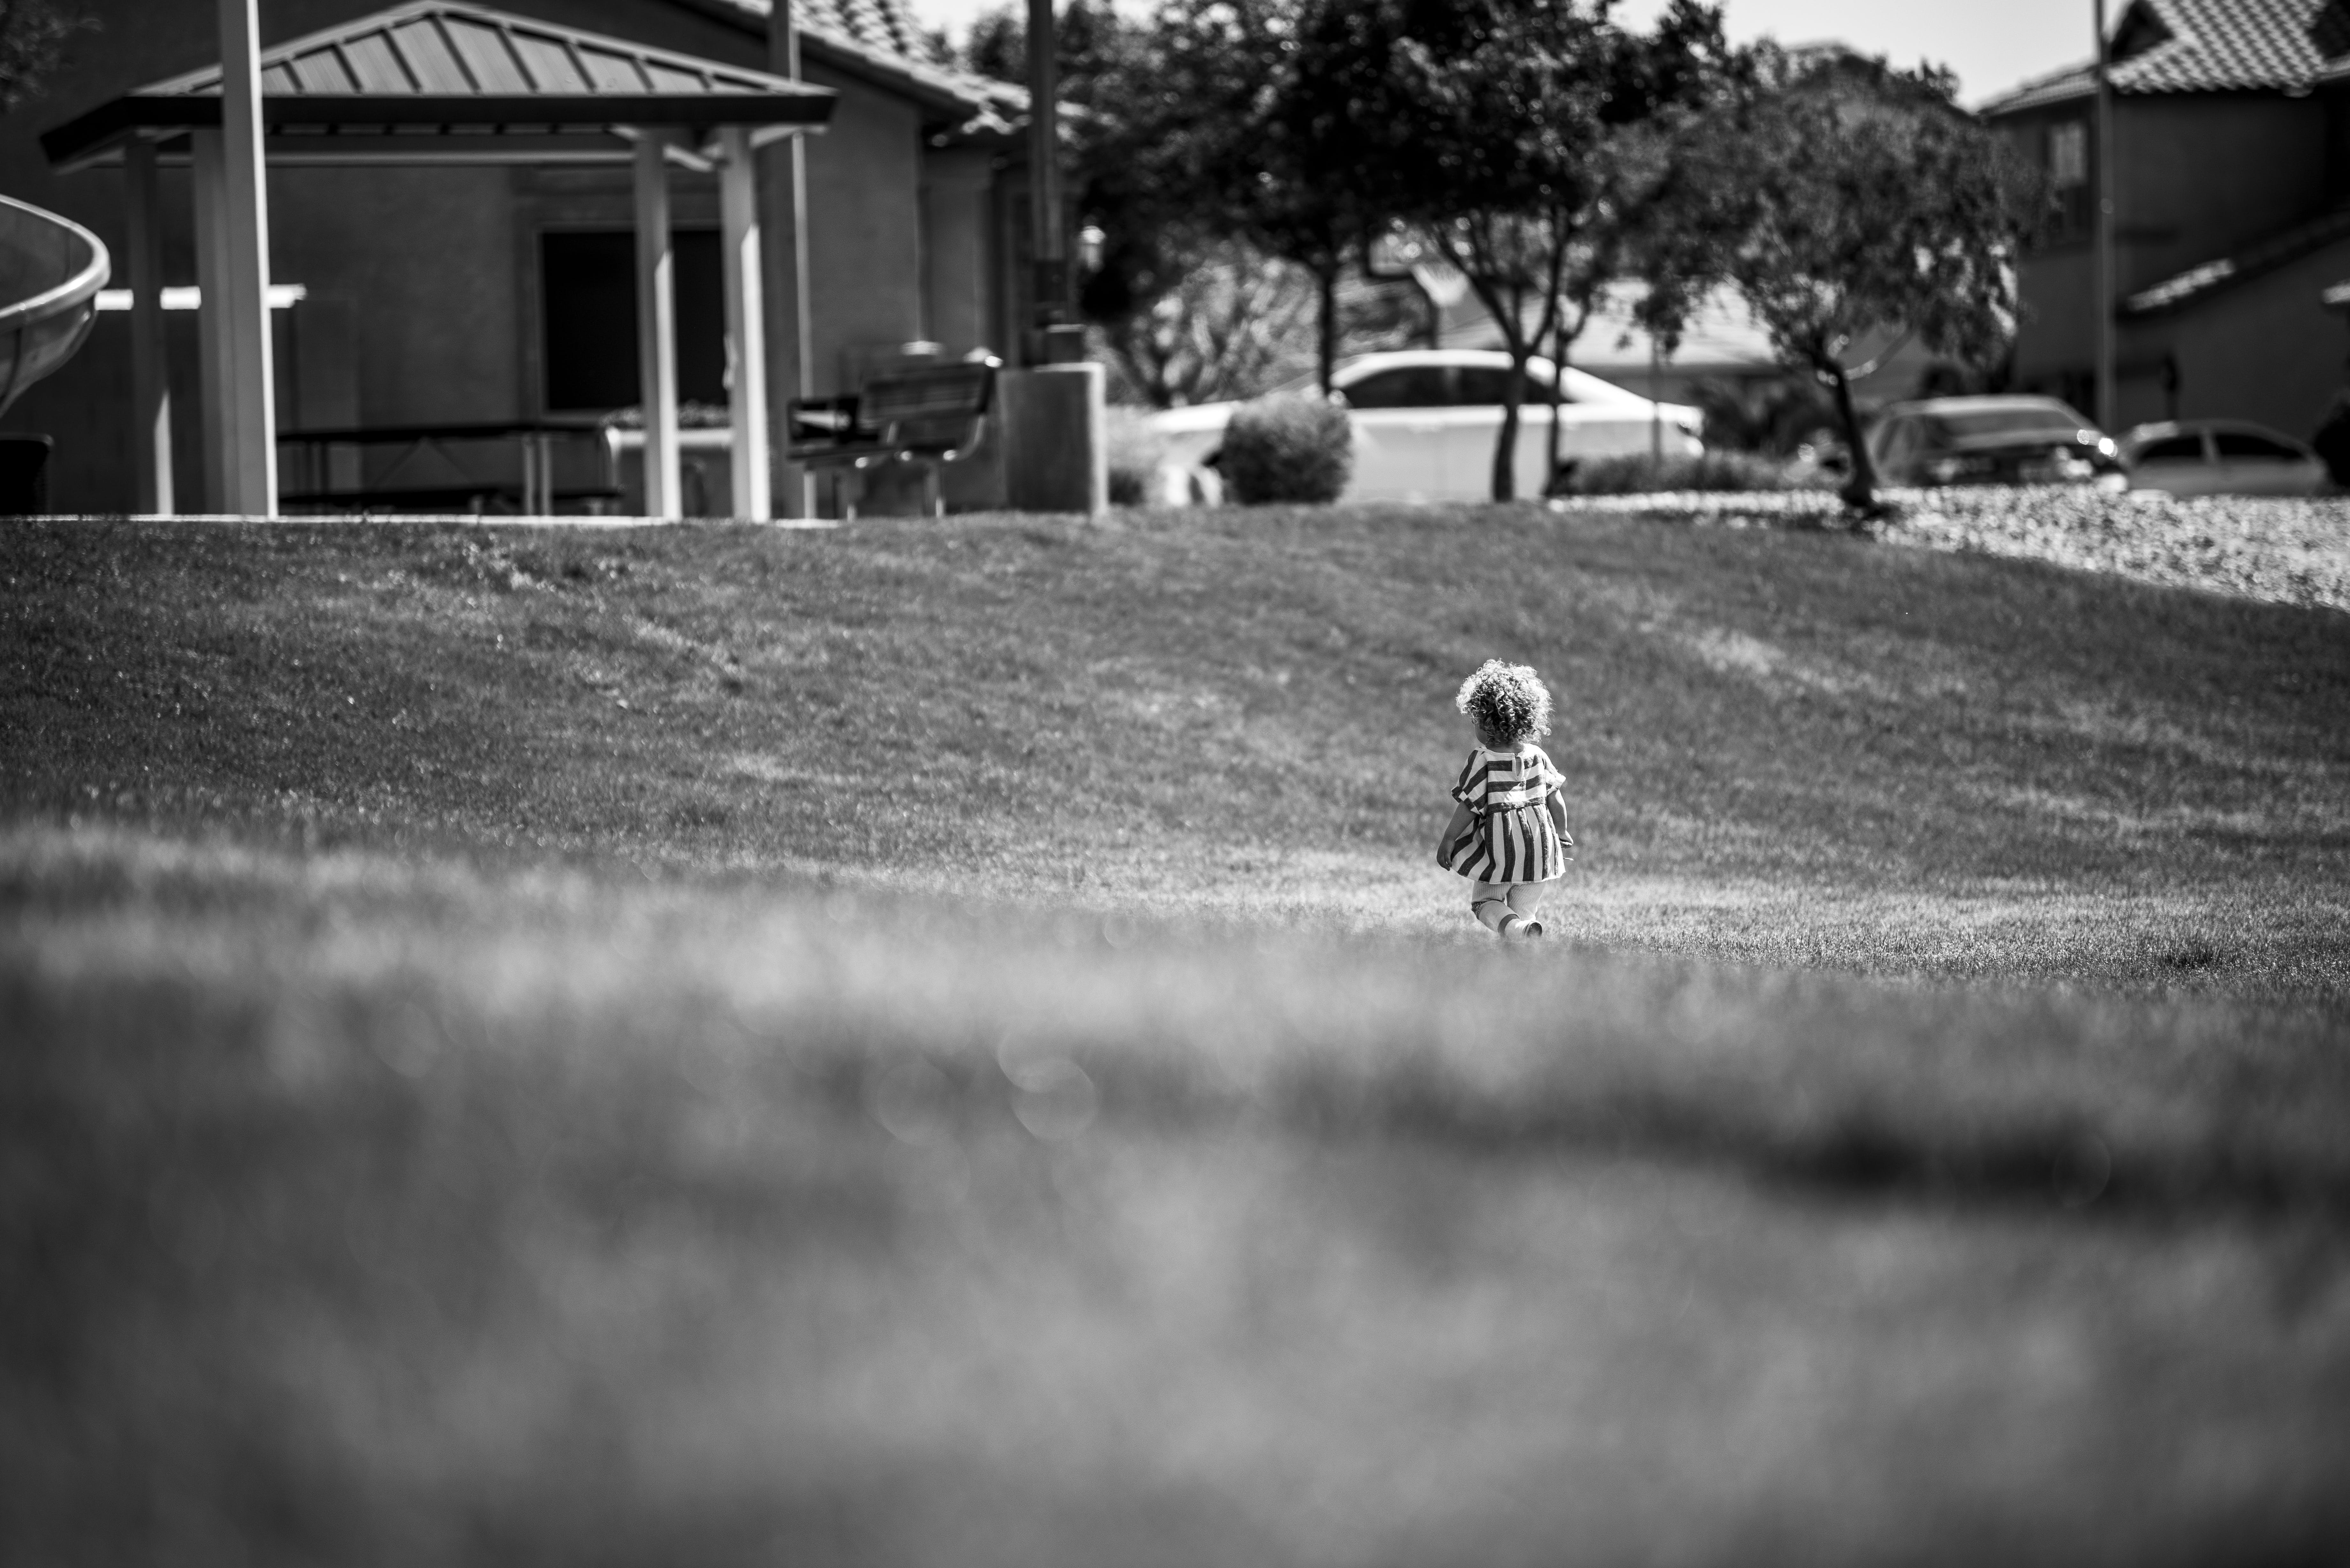 Grayscale Photography of Girl Walking on Grass Field